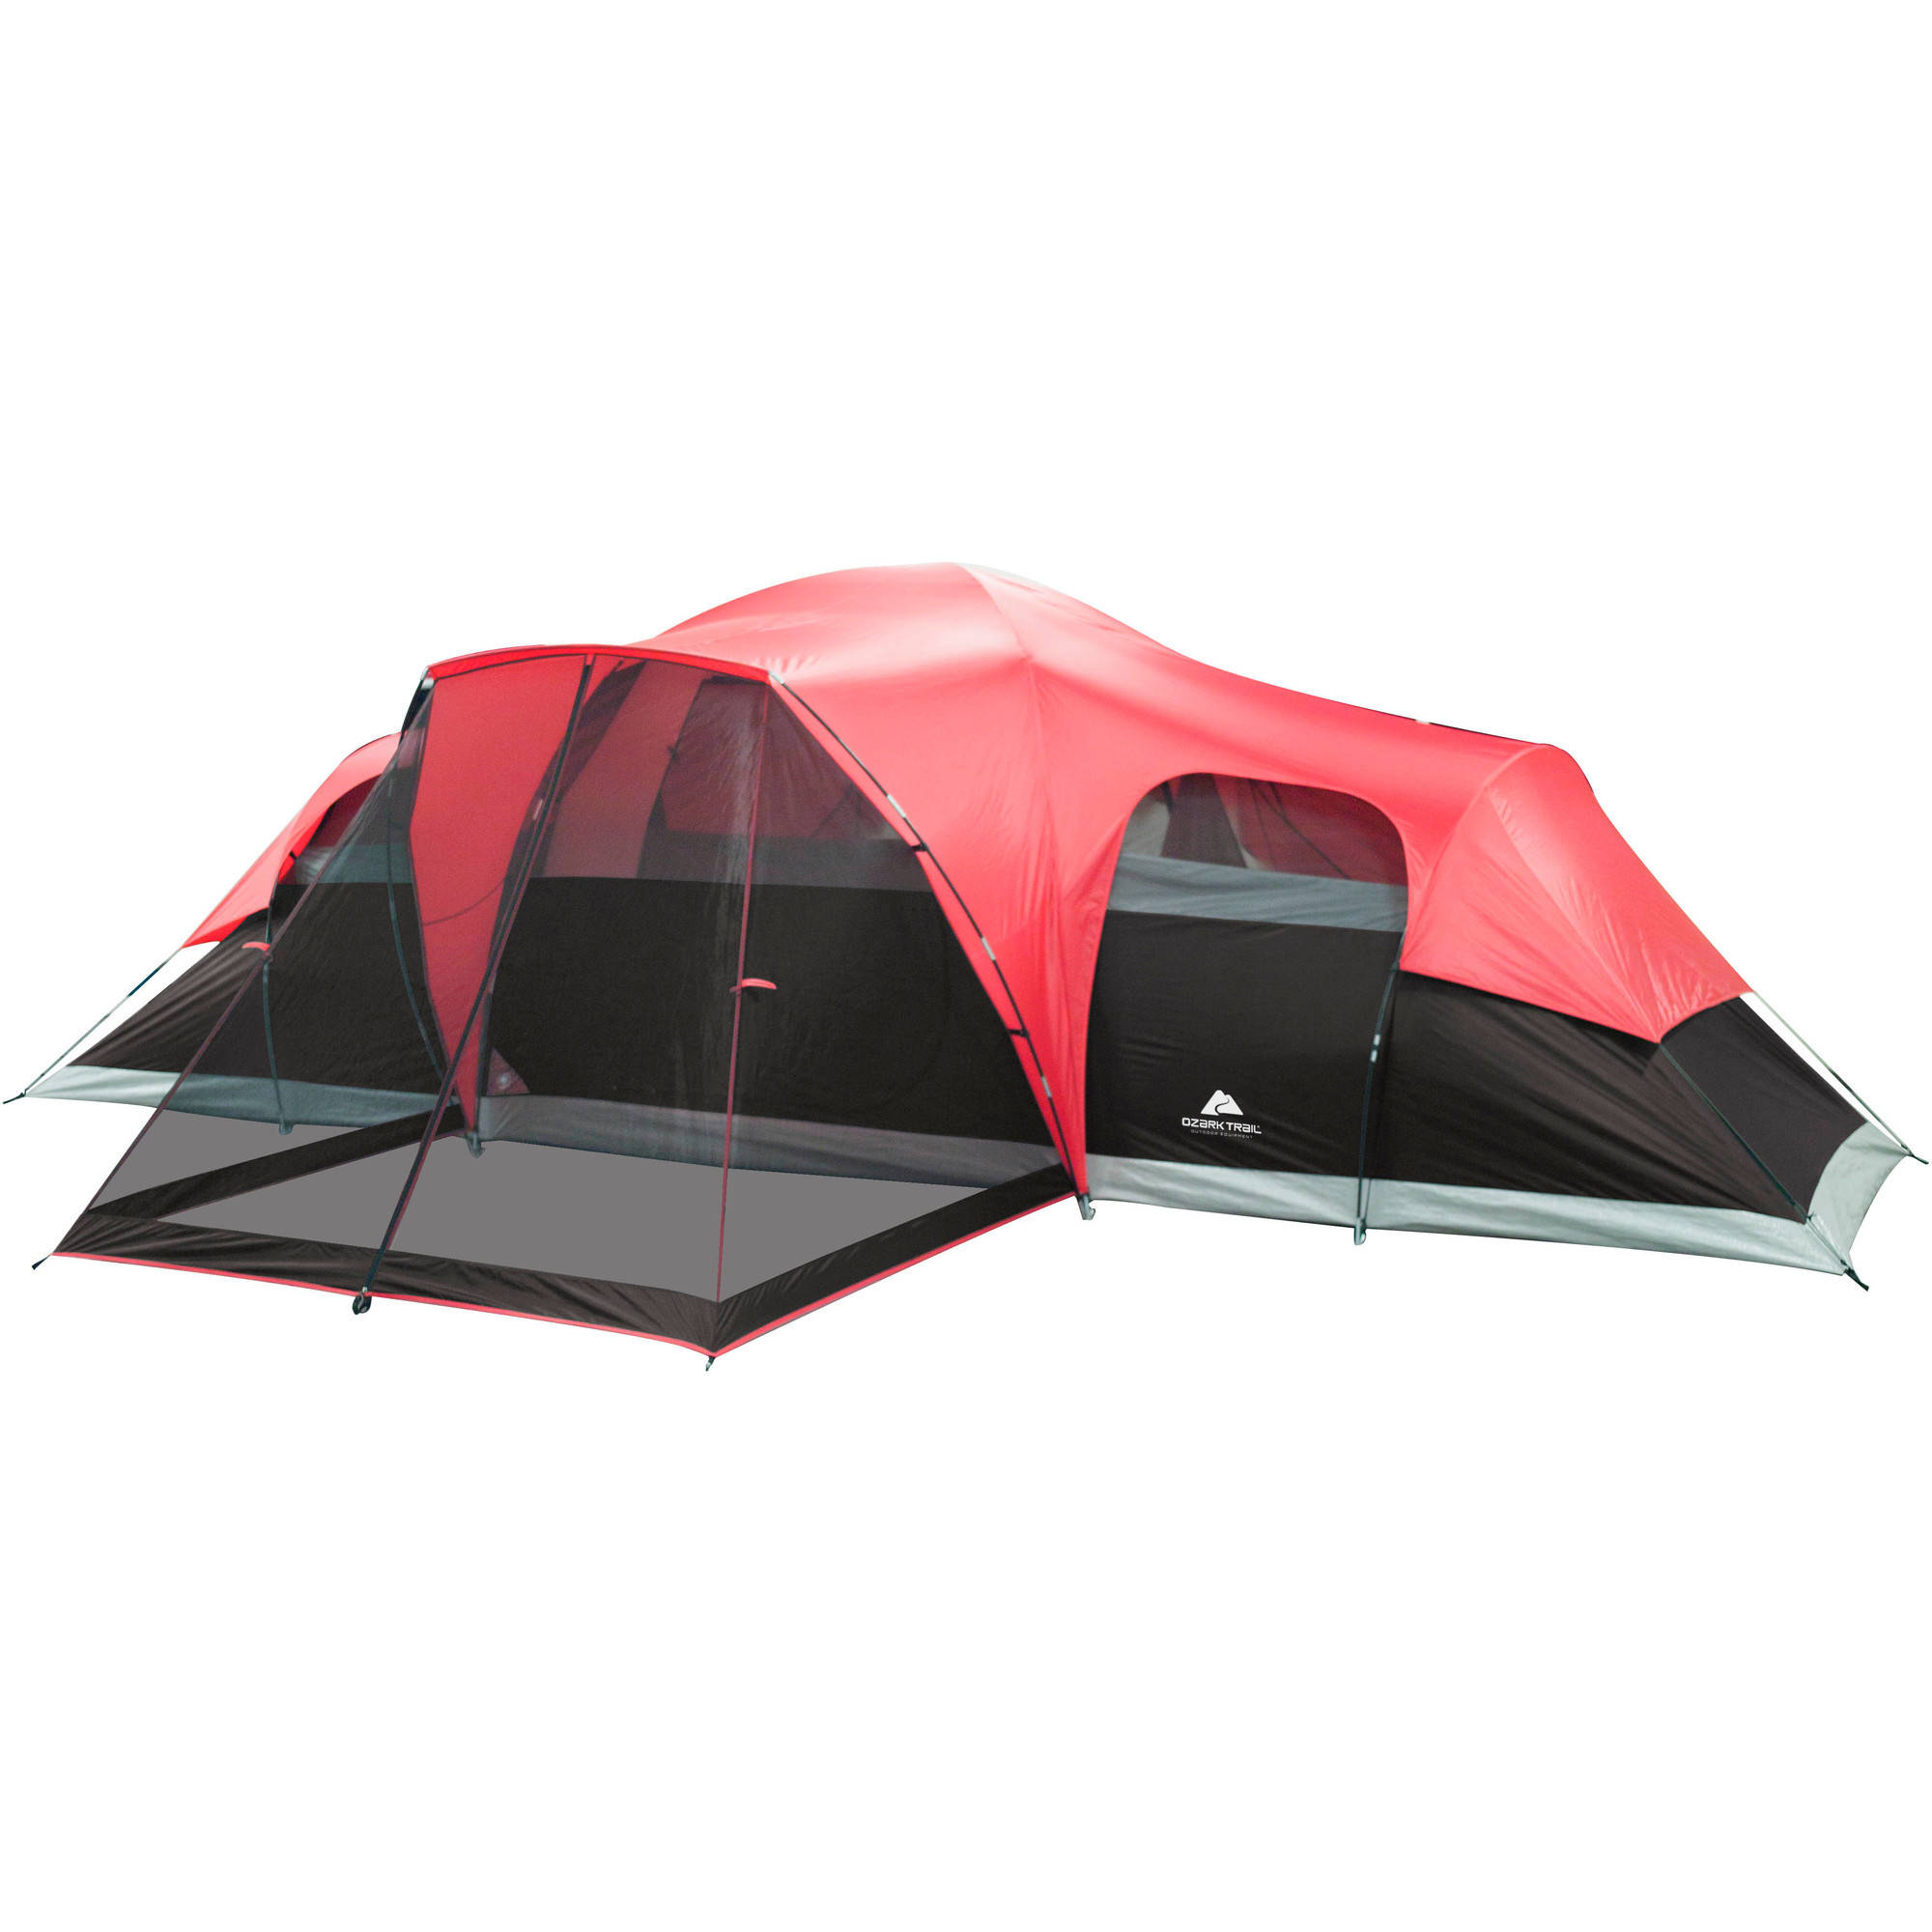 cabin value nco queen ozark room tent screen instant cabins trail person airbeds with bundle bonus nonconfig